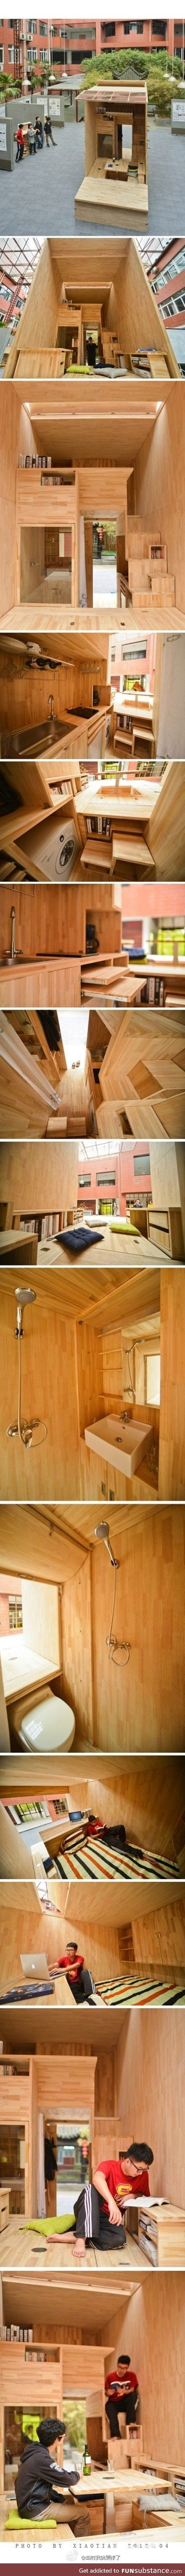 Student architect in China constructs his own 75 ft² wooden house